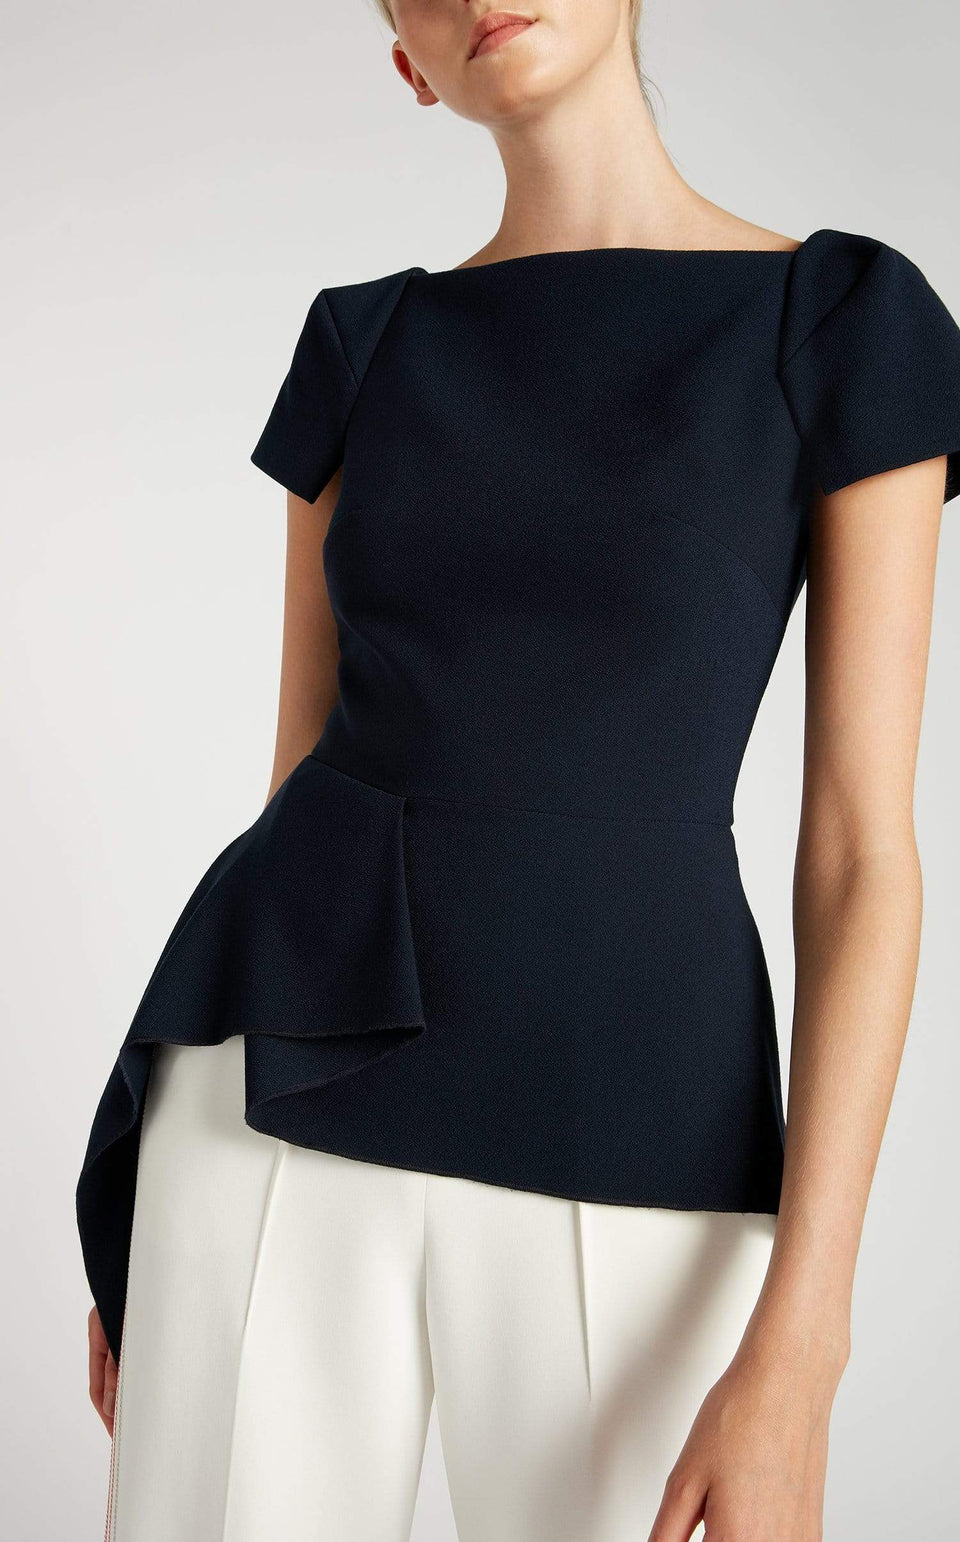 Newhall Top In Navy from Roland Mouret